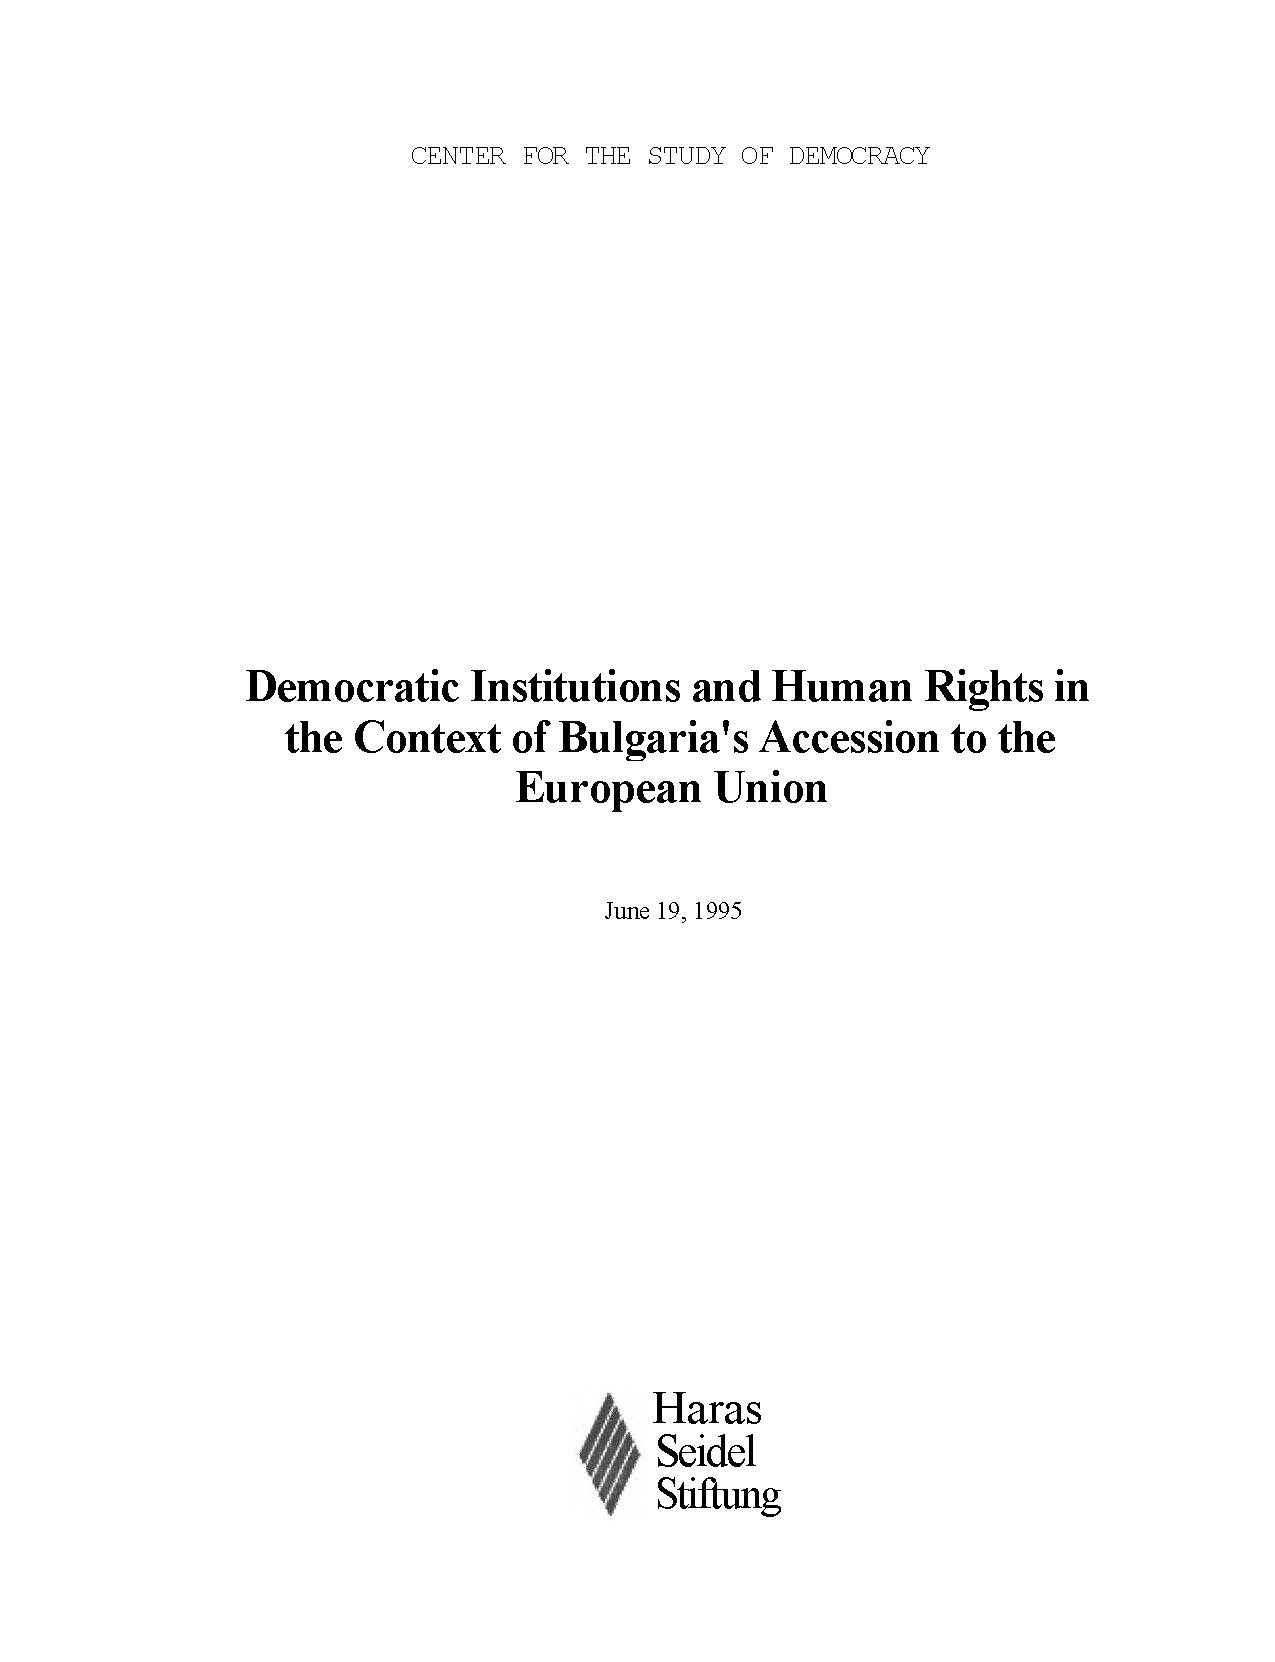 Democratic Institutions and Human Rights in the Context of Bulgaria's Accession to the European Union